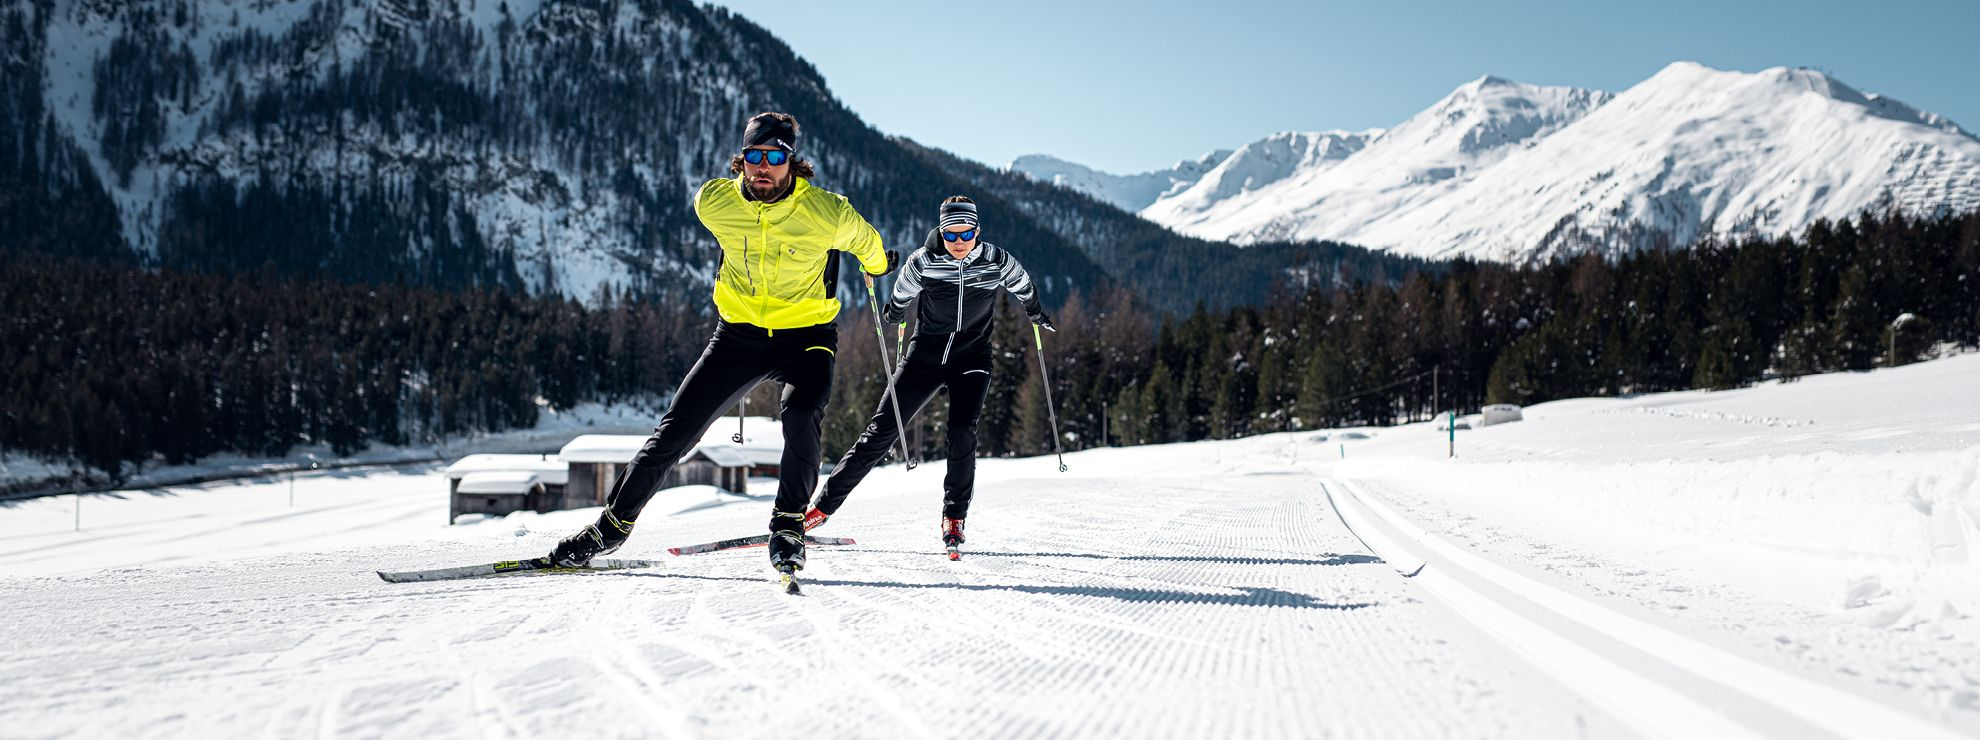 Ski tour & cross country skiing clothing